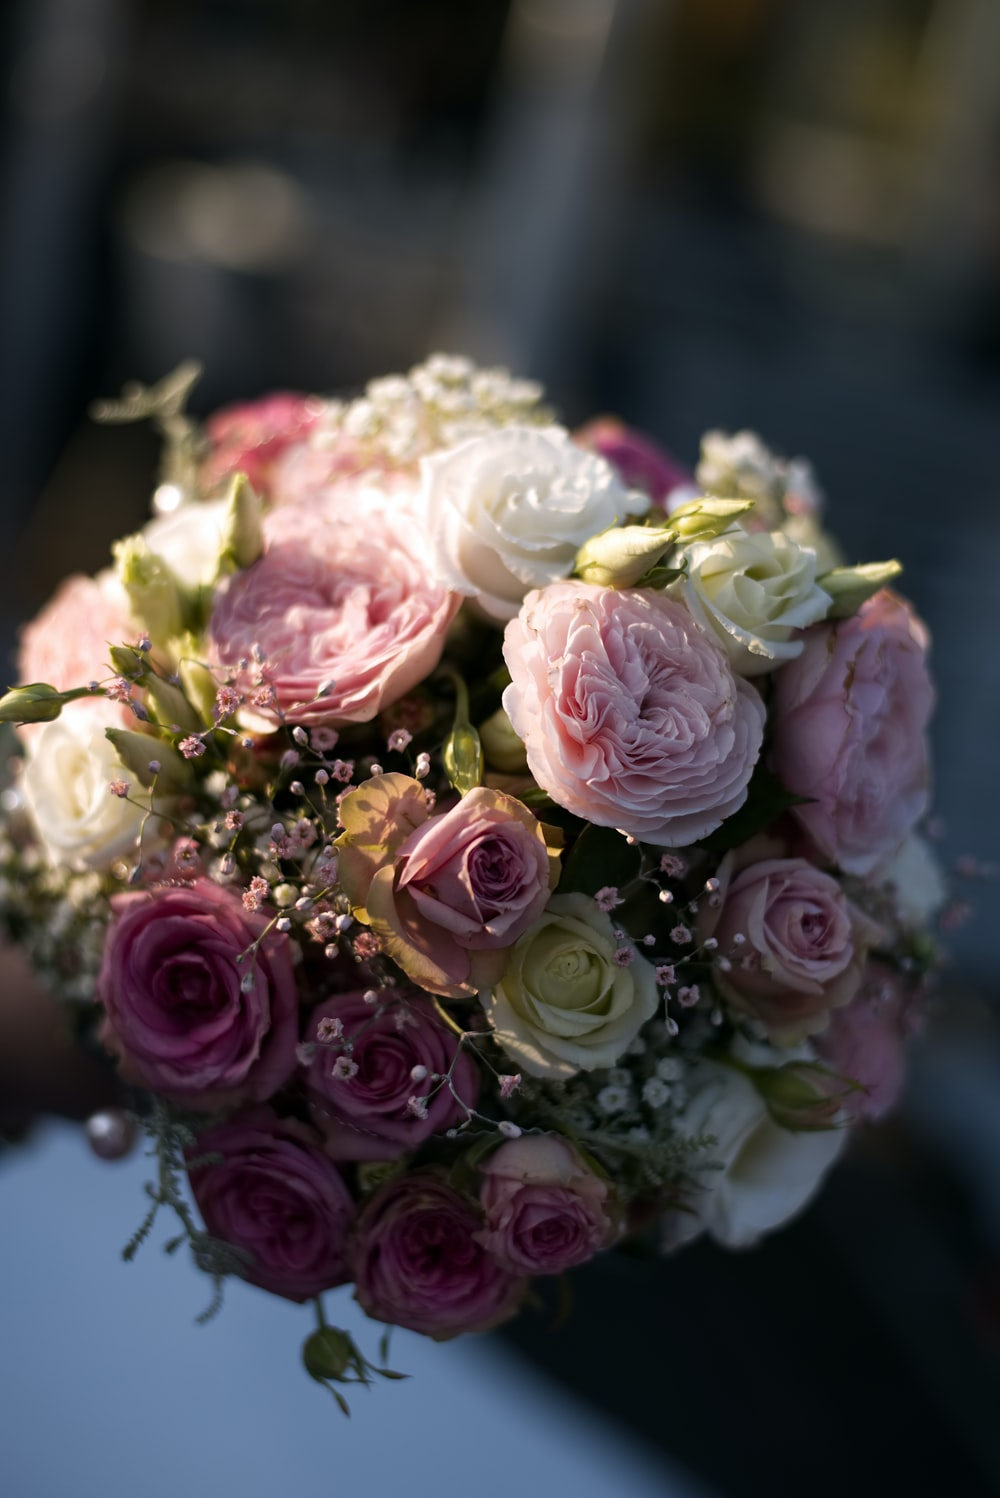 pink and white rose flower bouquet